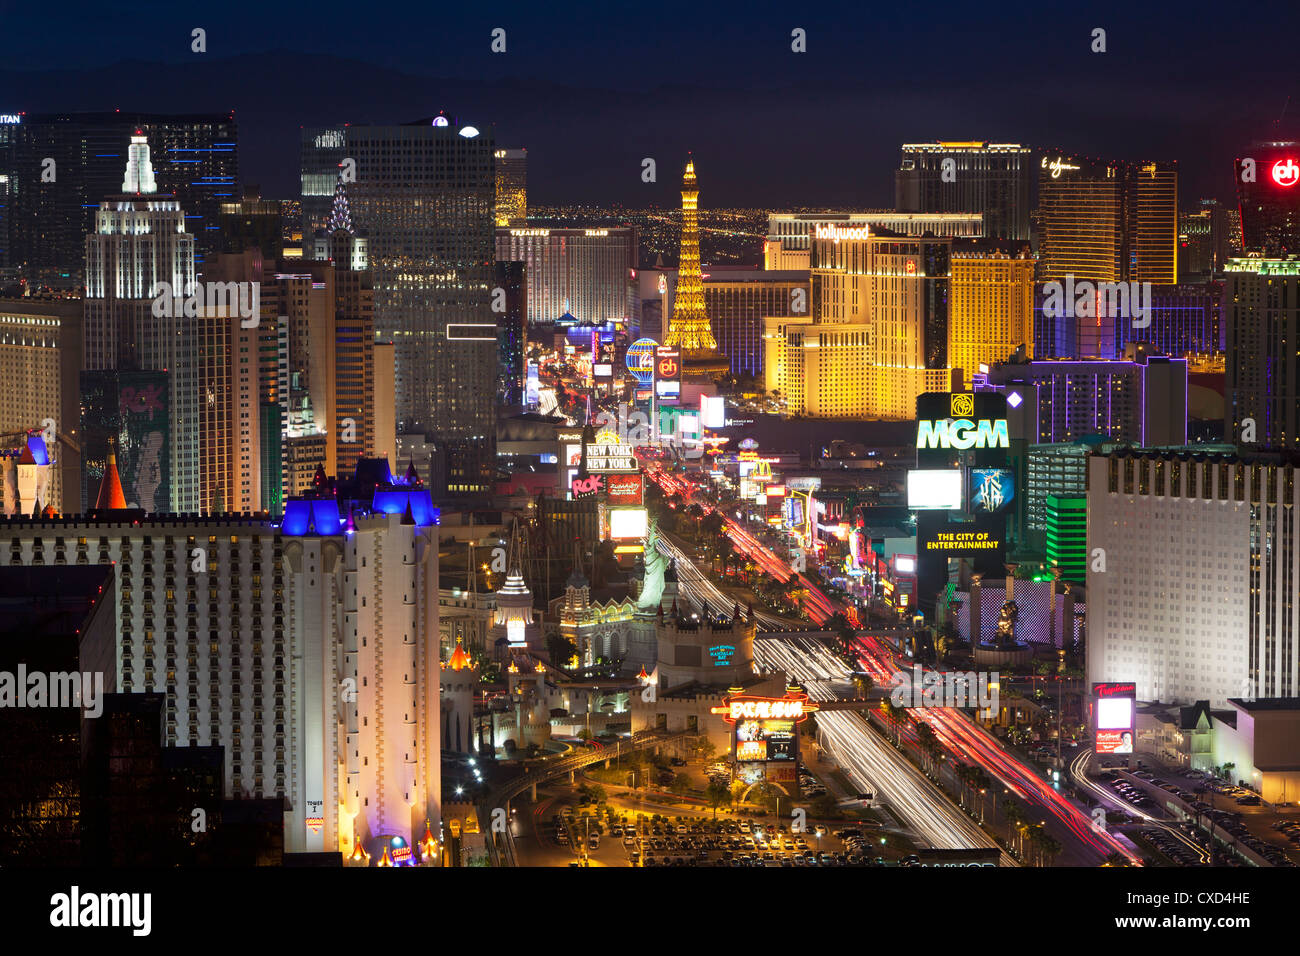 Portrait de l'hôtels et casinos le long du Strip au crépuscule, Las Vegas, Nevada, États-Unis Photo Stock